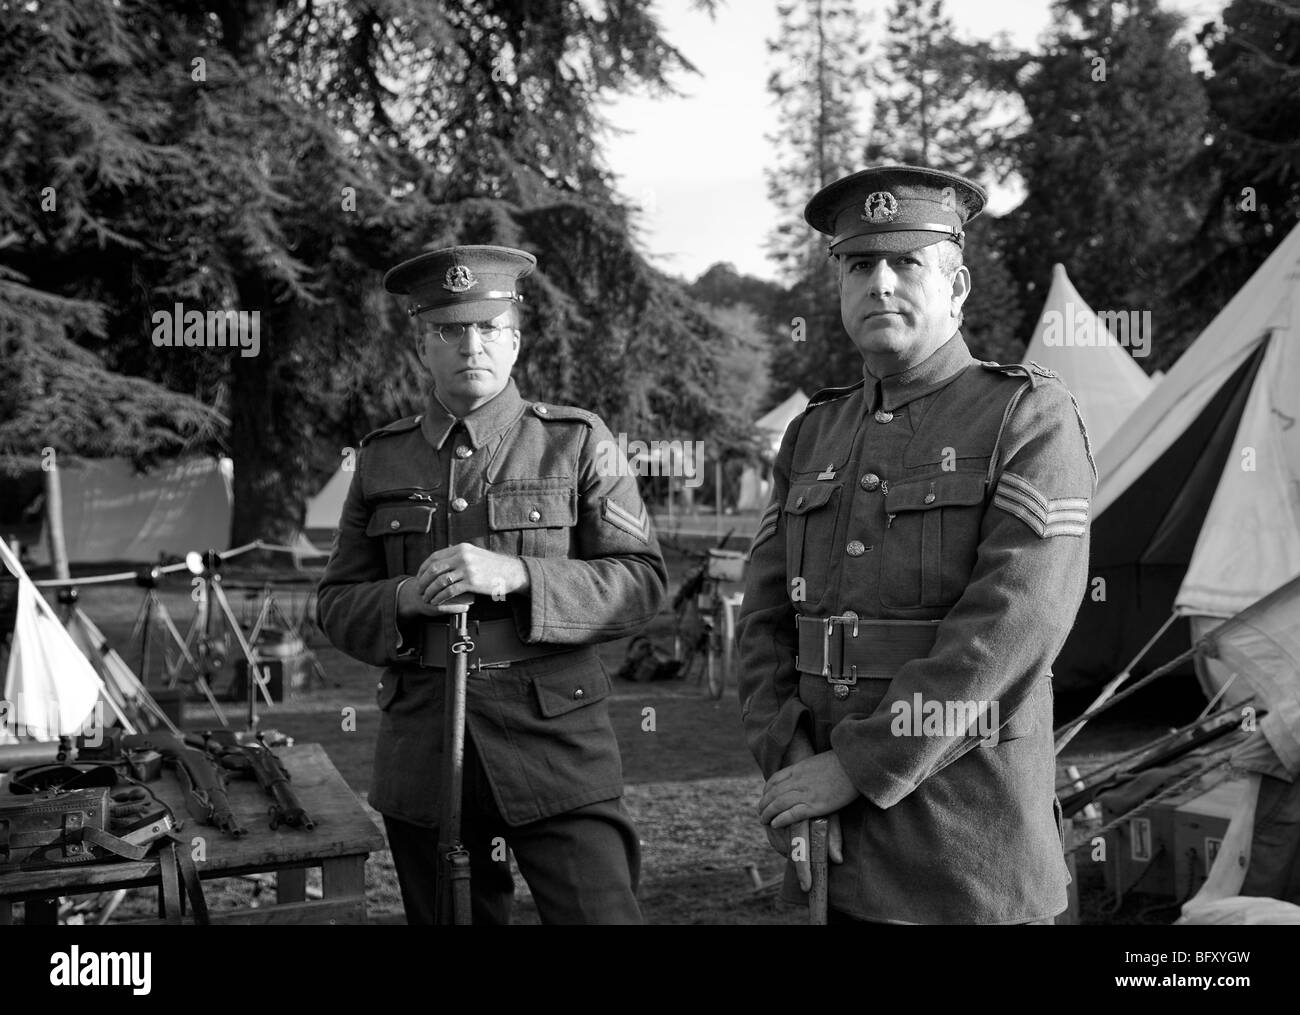 Portrayal of British army during the Great War, including authentic uniforms and field equipment from the period - Stock Image